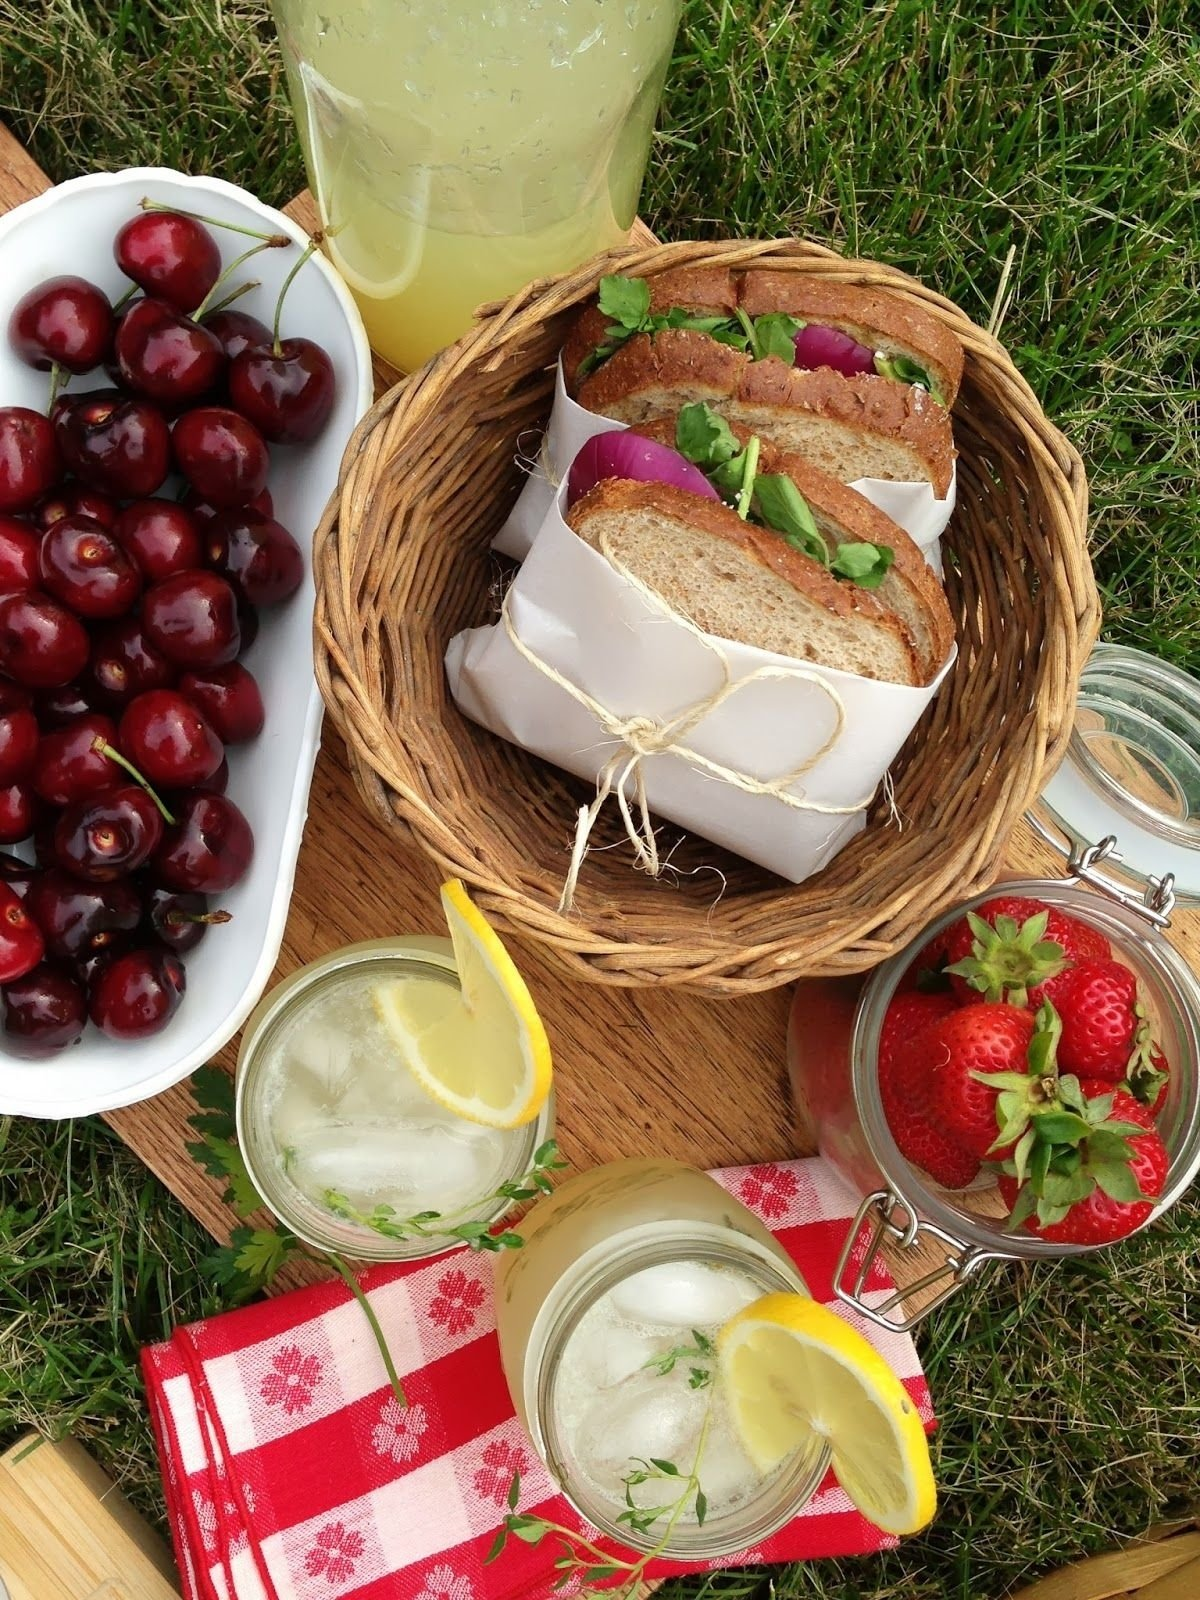 10 Unique Picnic Food Ideas For A Date intrinsic beauty entertaining picnic for two date ideas